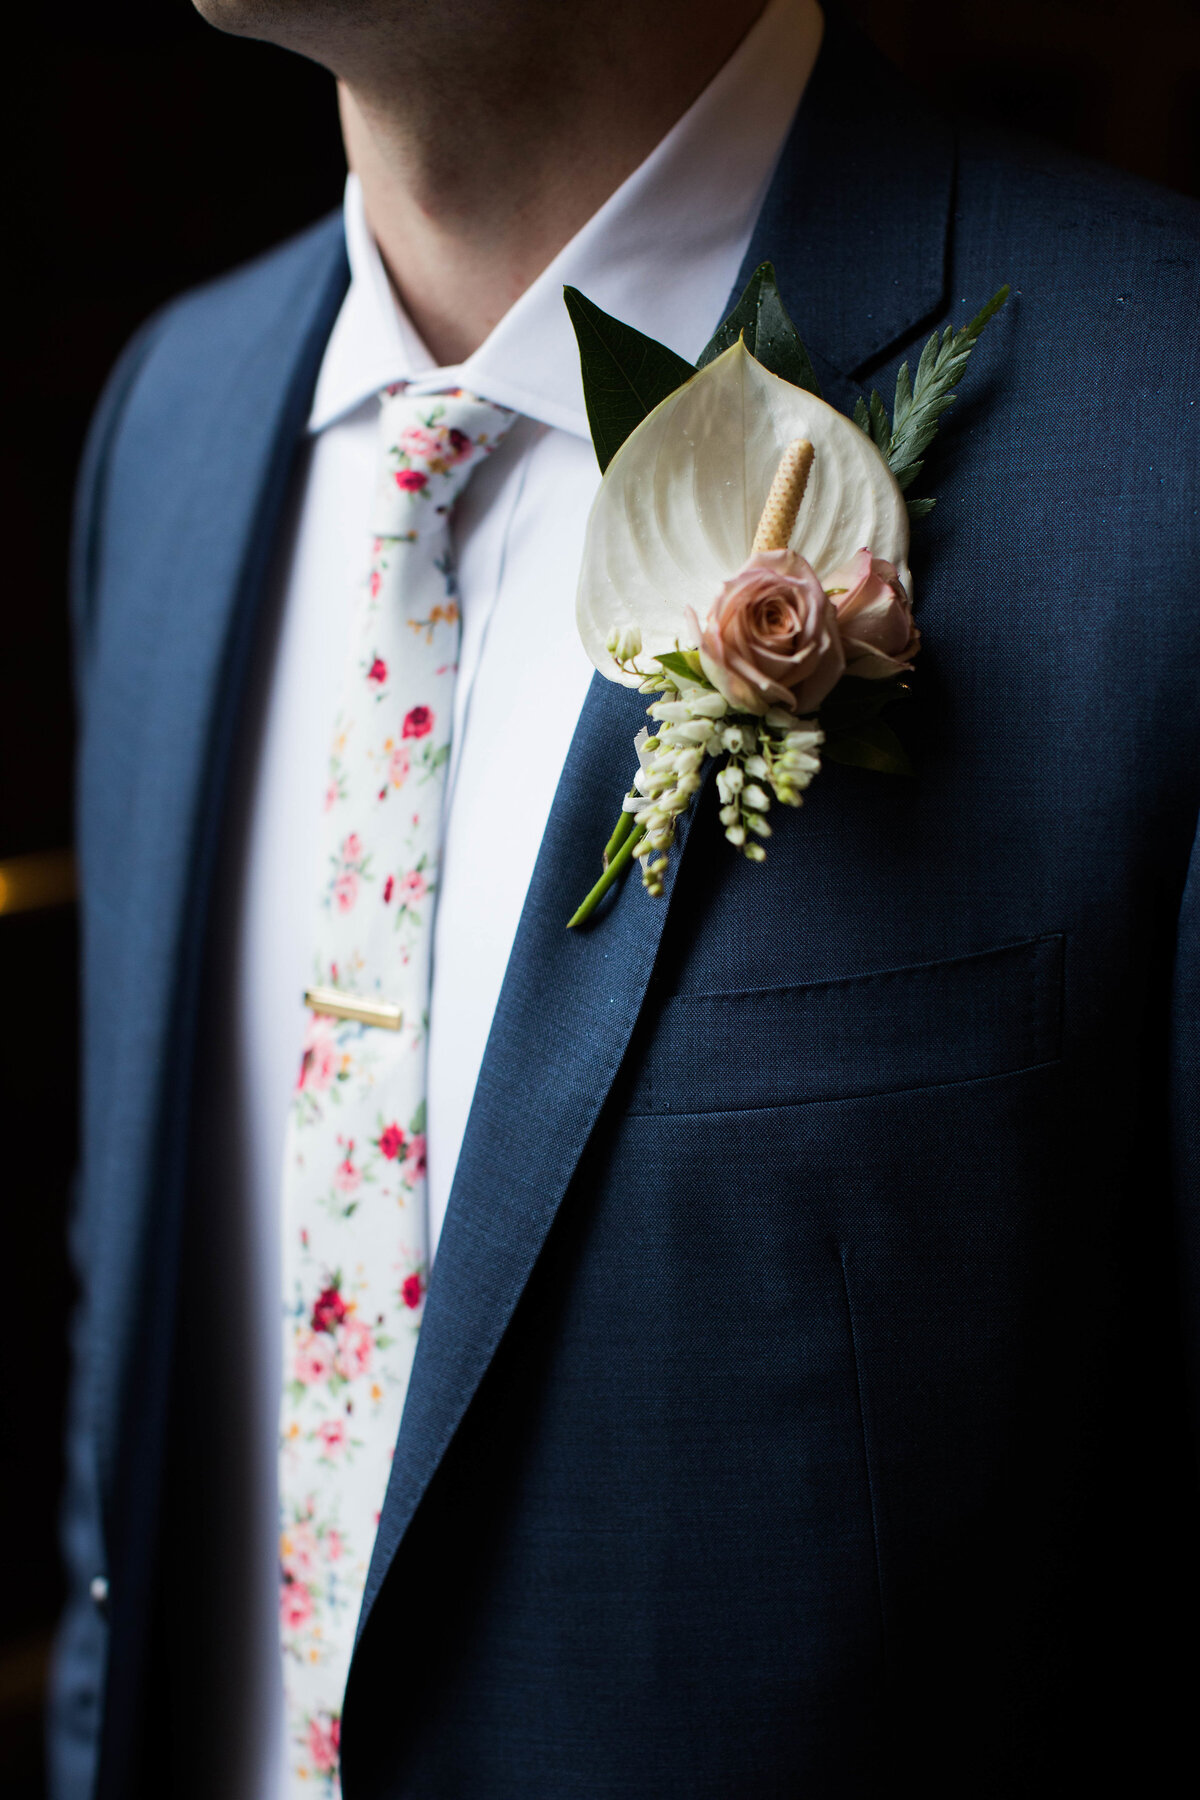 Groom in navy suit with floral tie and boutonniere